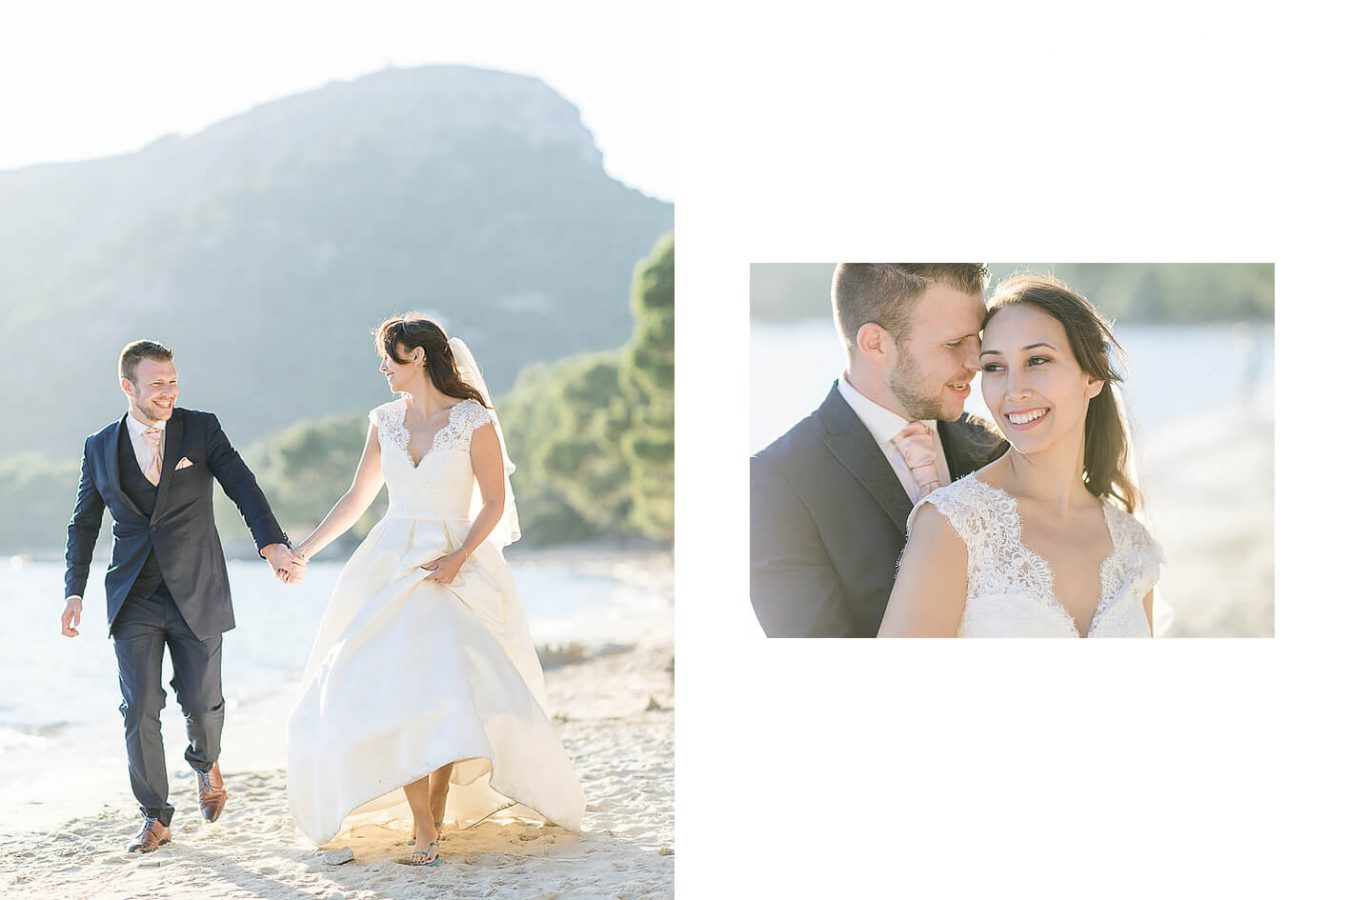 Mallorca Hochzeit Wedding Hochzeitsfotograf After-Wedding-Shooting Sonnenuntergang Cap Formentor Strand